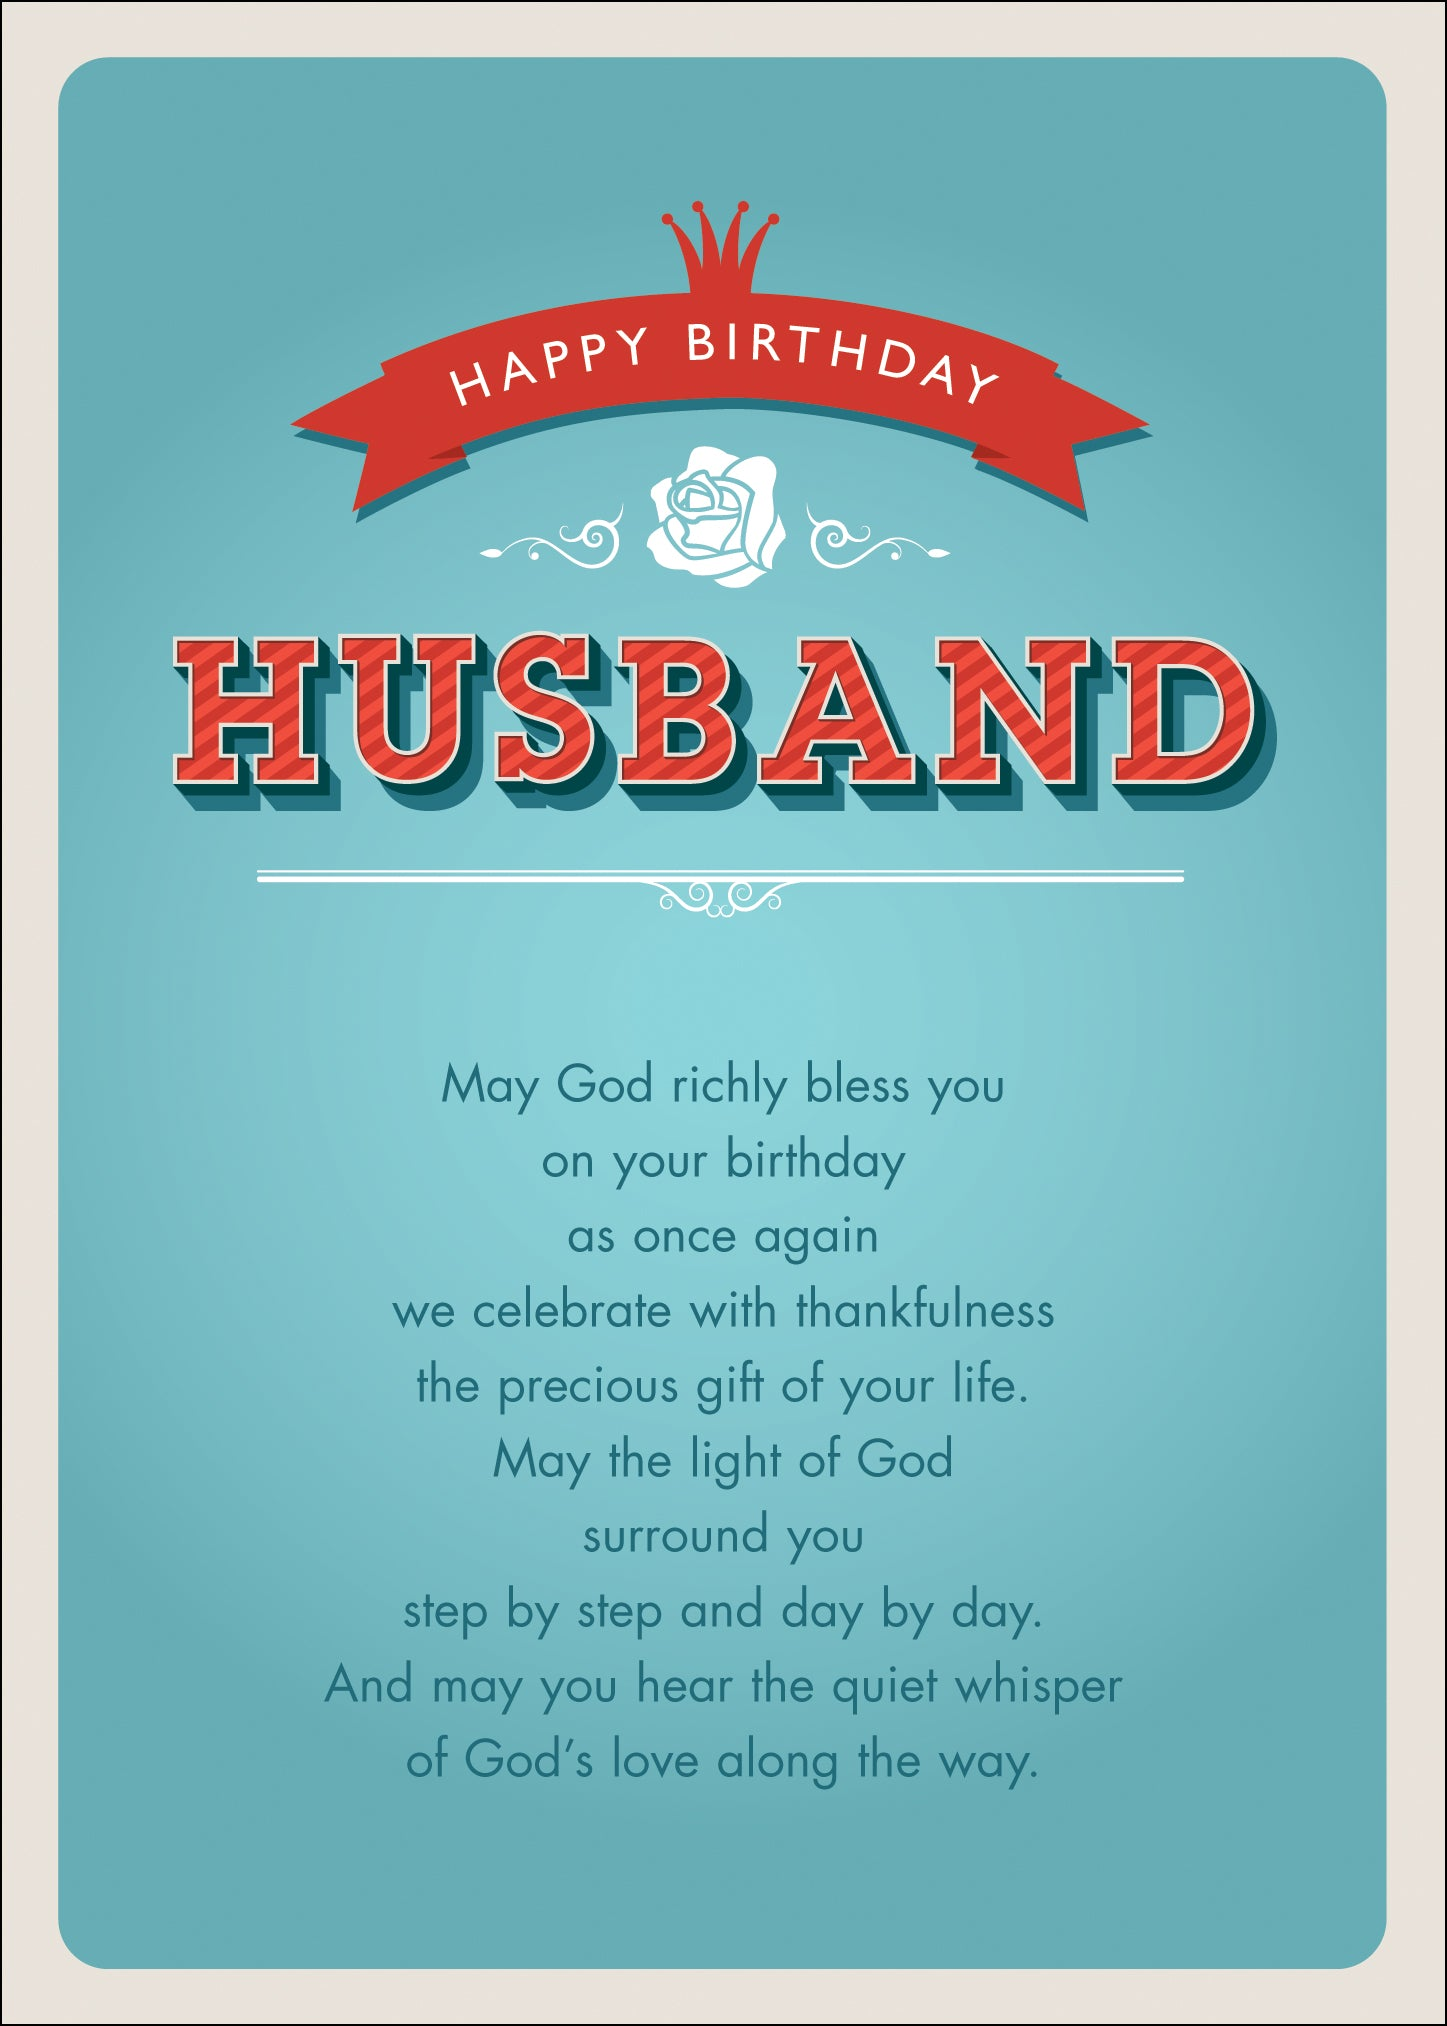 Happy Birthday - HusbandHappy Birthday - Husband